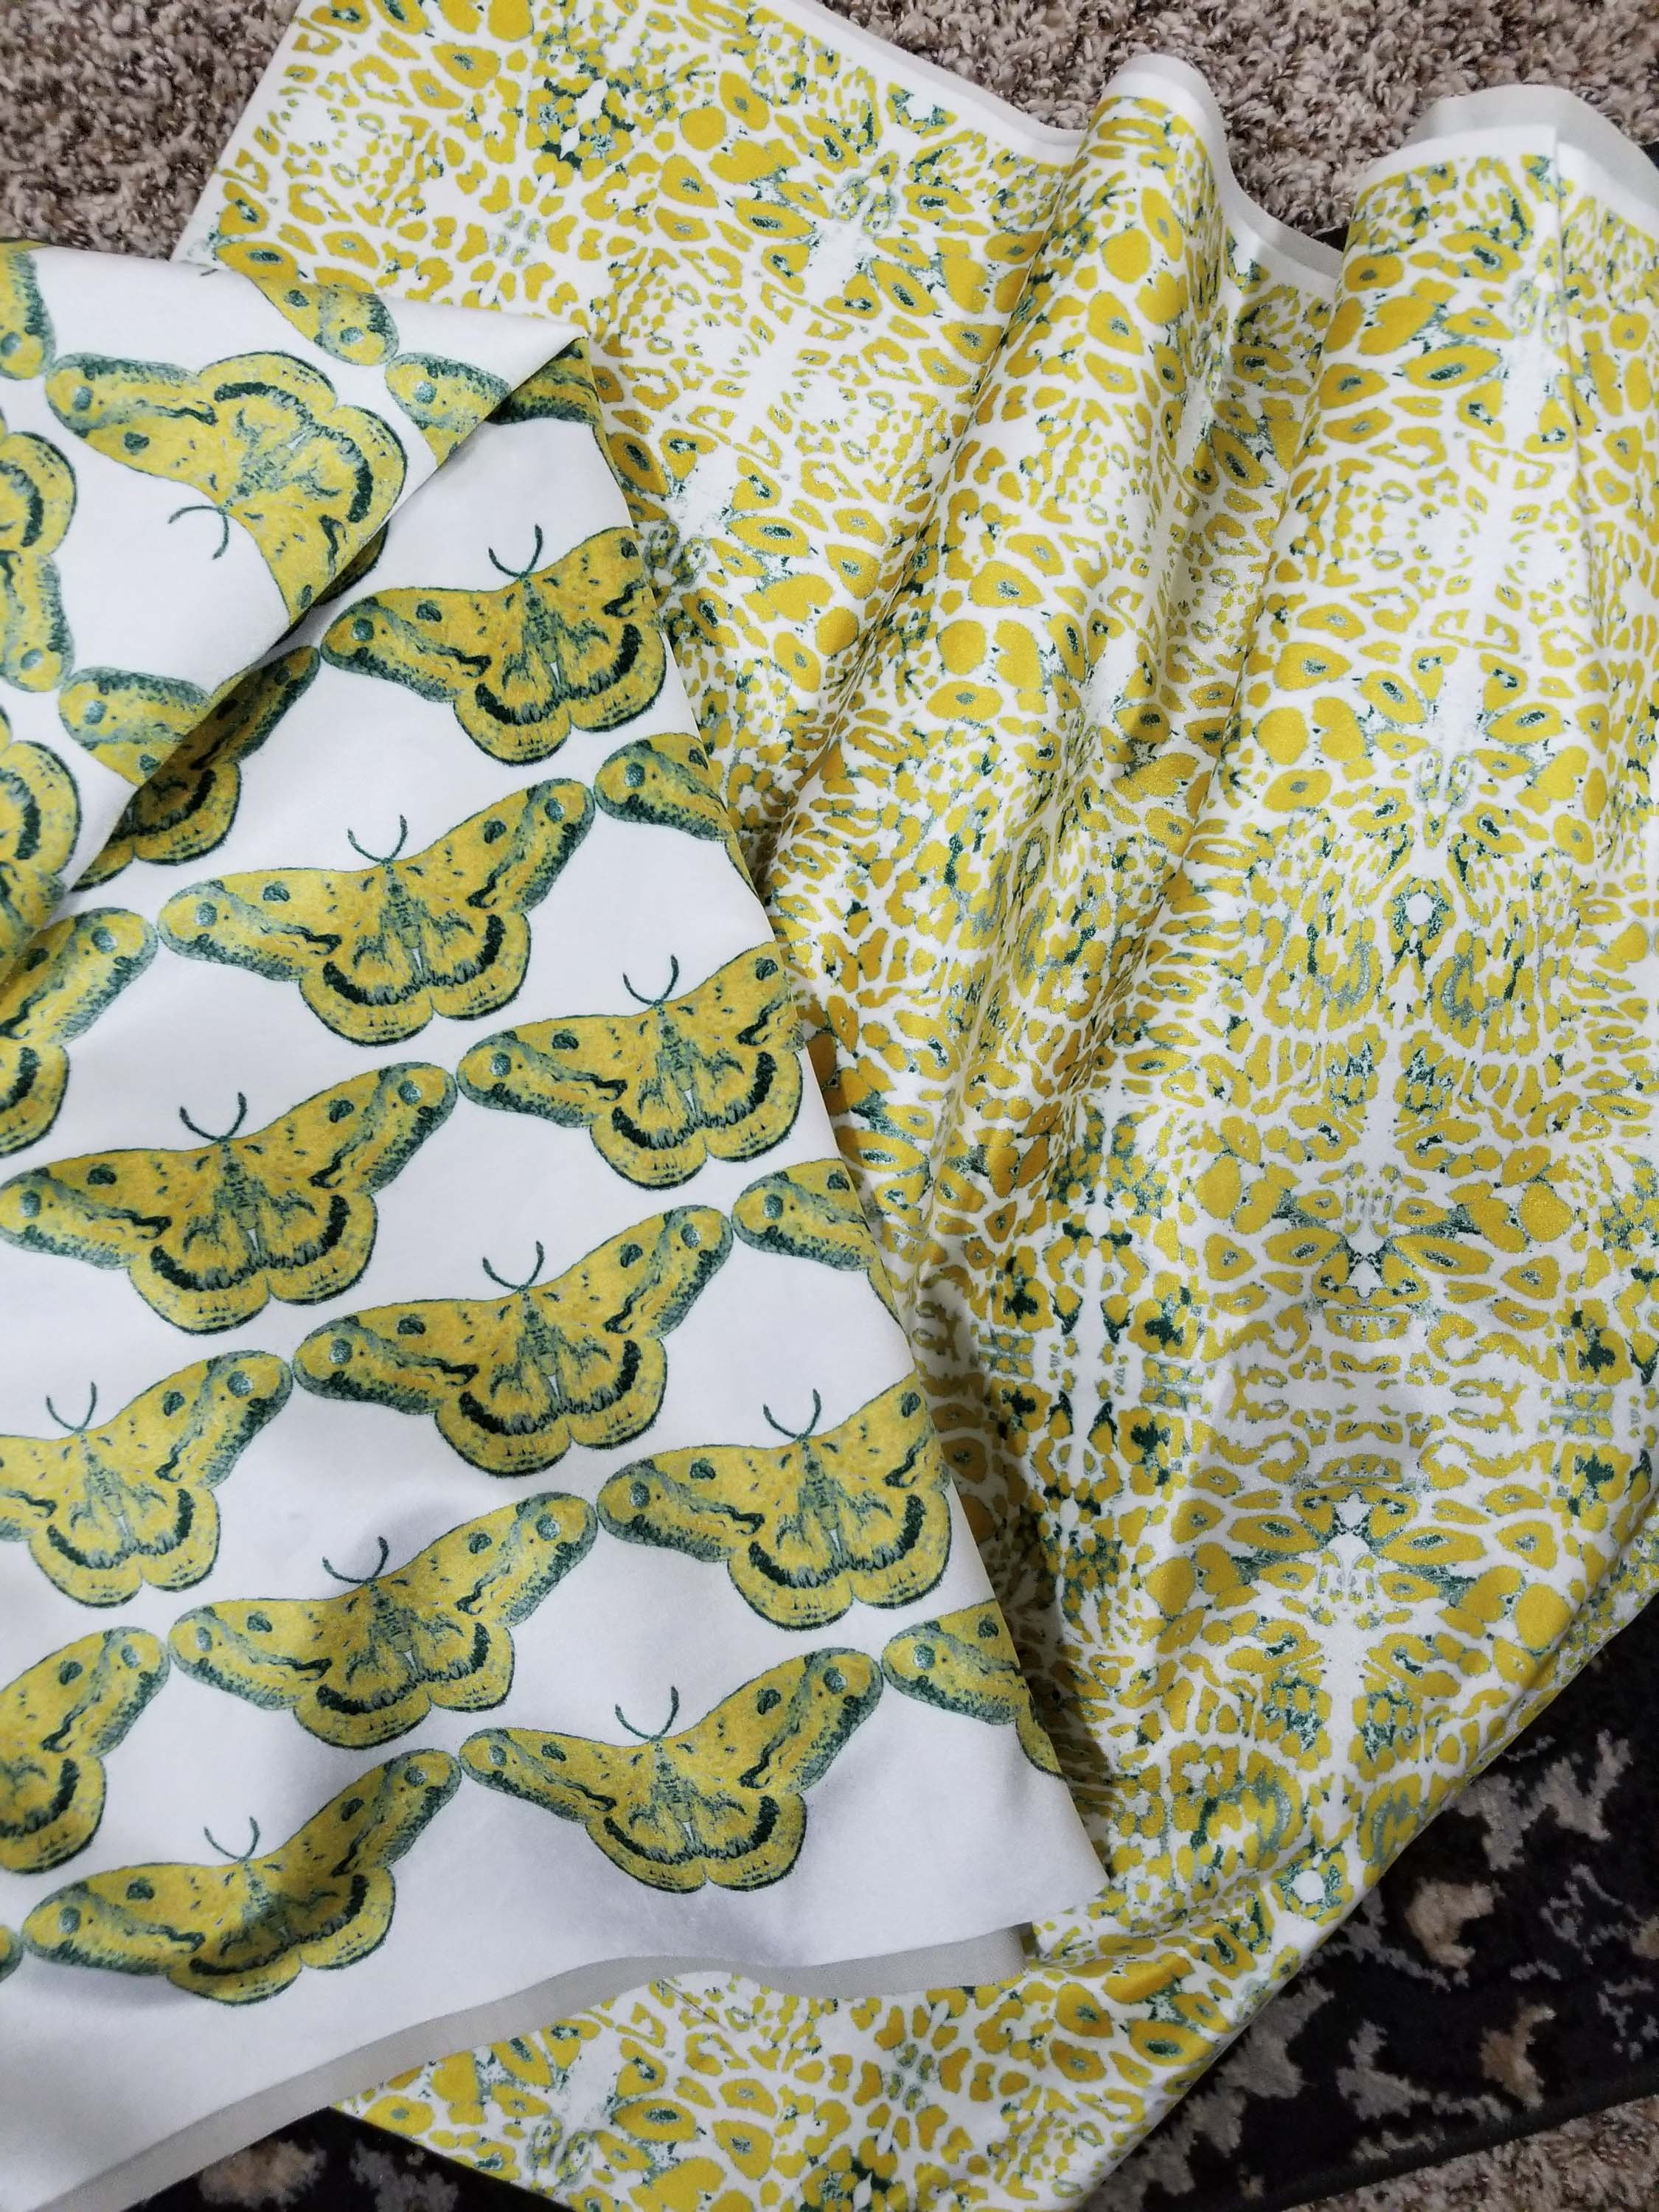 Yellow colored printed fabric